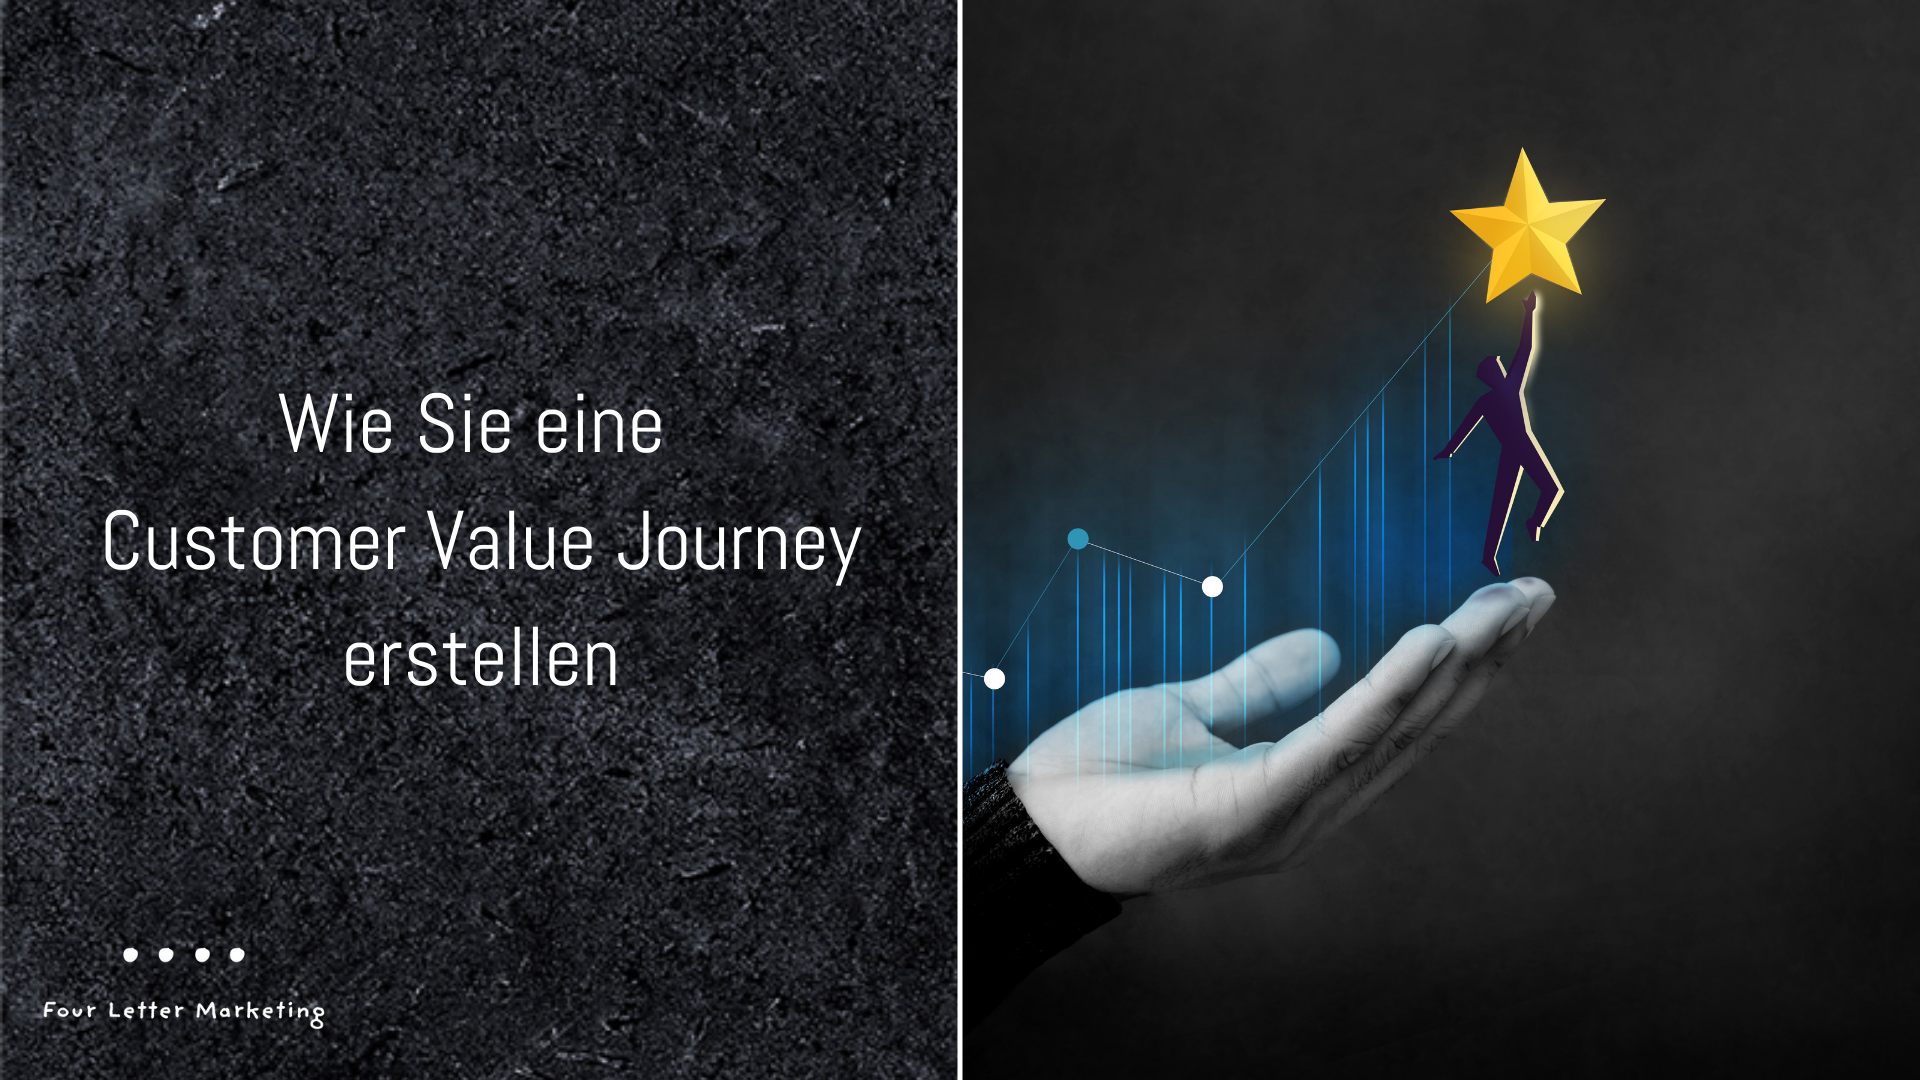 Customer Value Journey erstellen